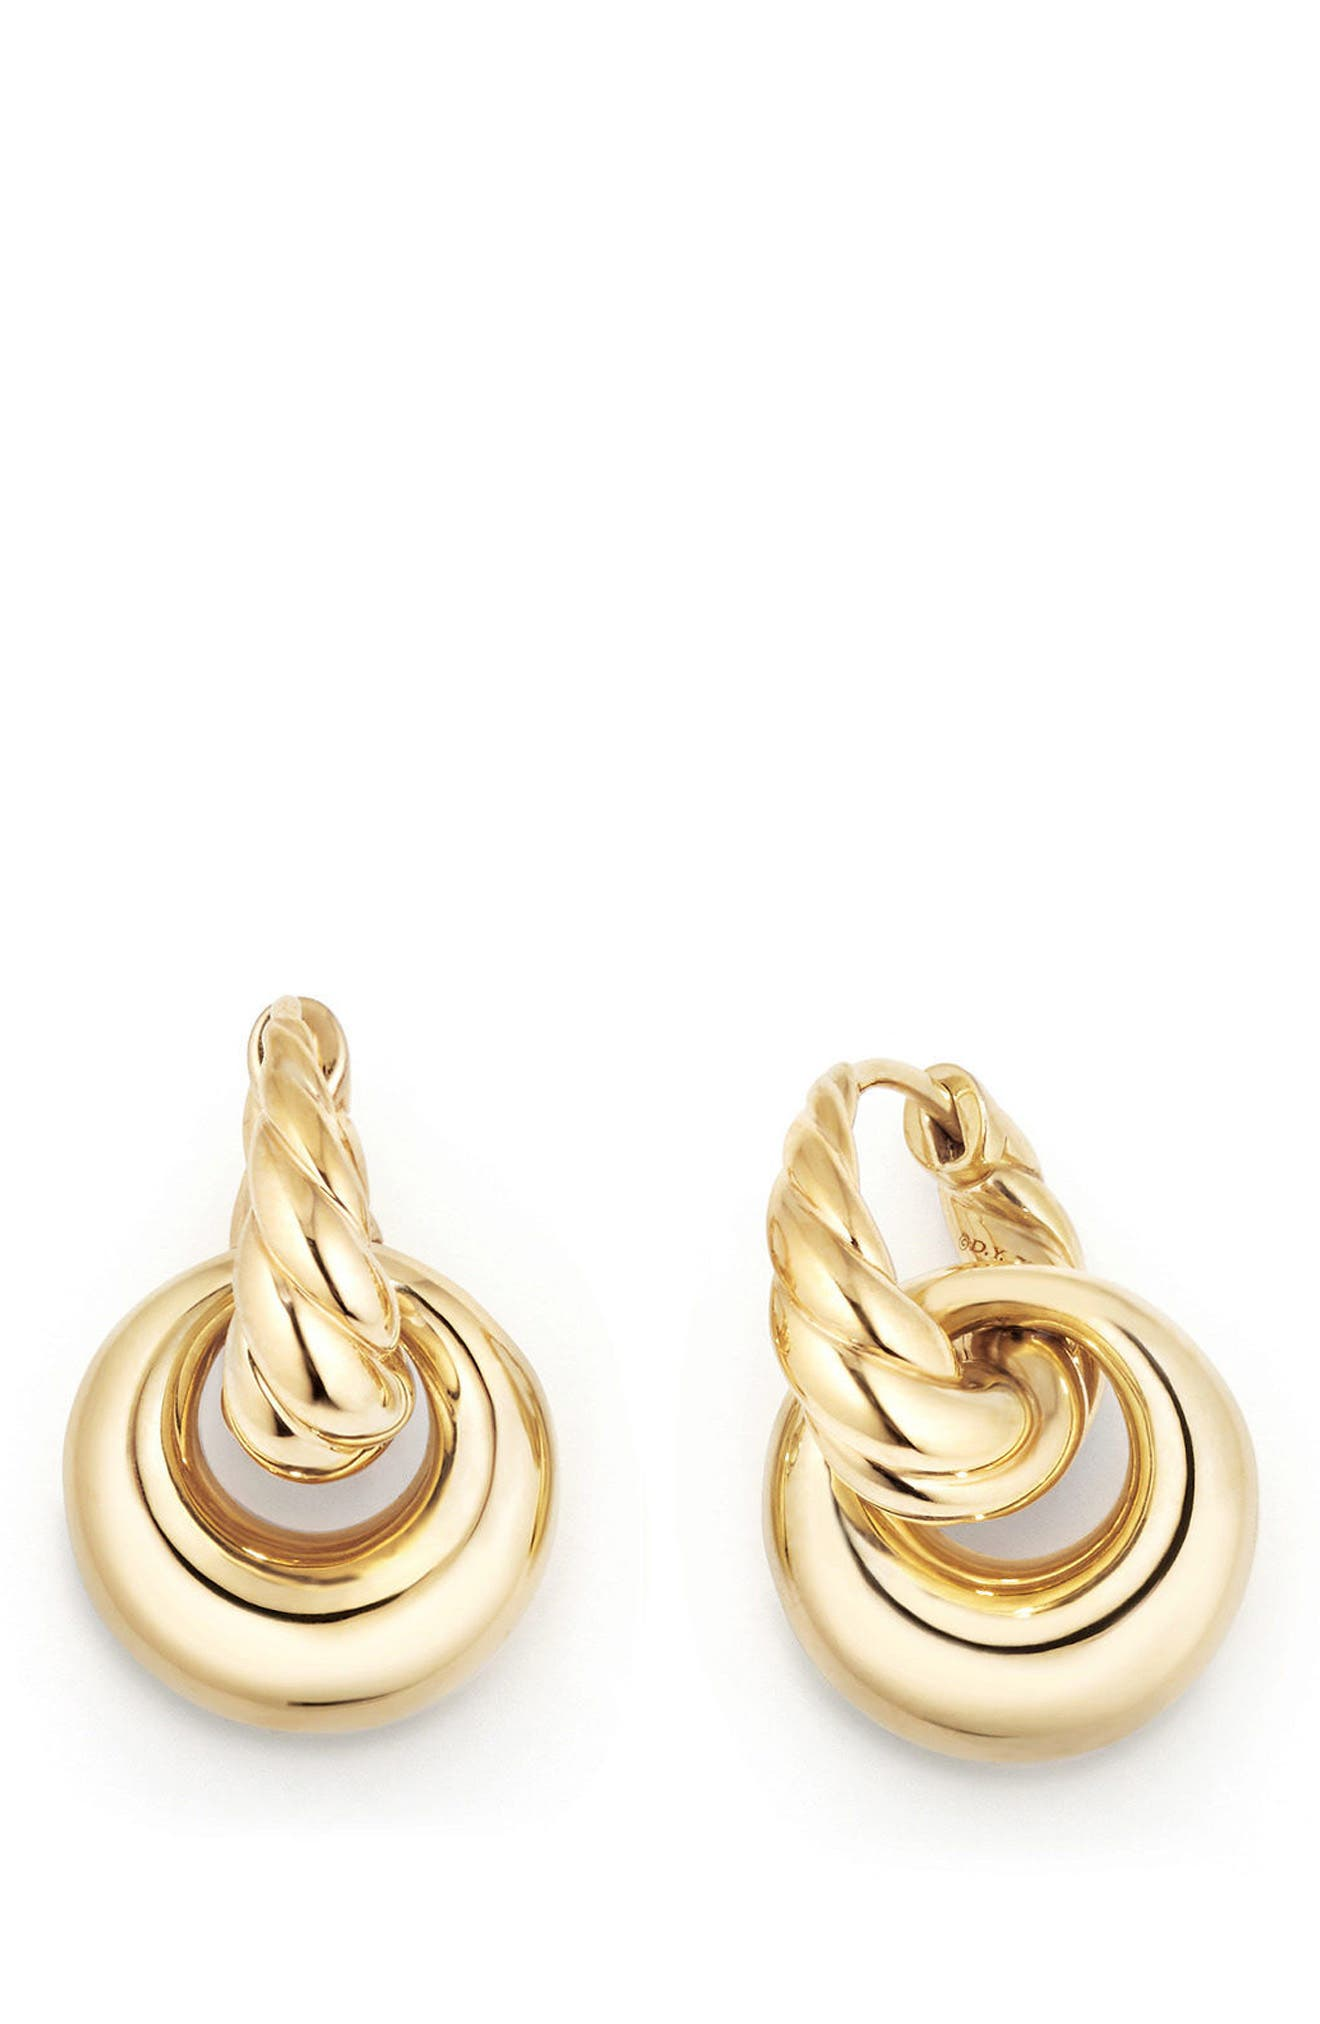 Pure Form<sup>®</sup> Drop Earrings in 18K Yellow Gold,                             Alternate thumbnail 2, color,                             YELLOW GOLD